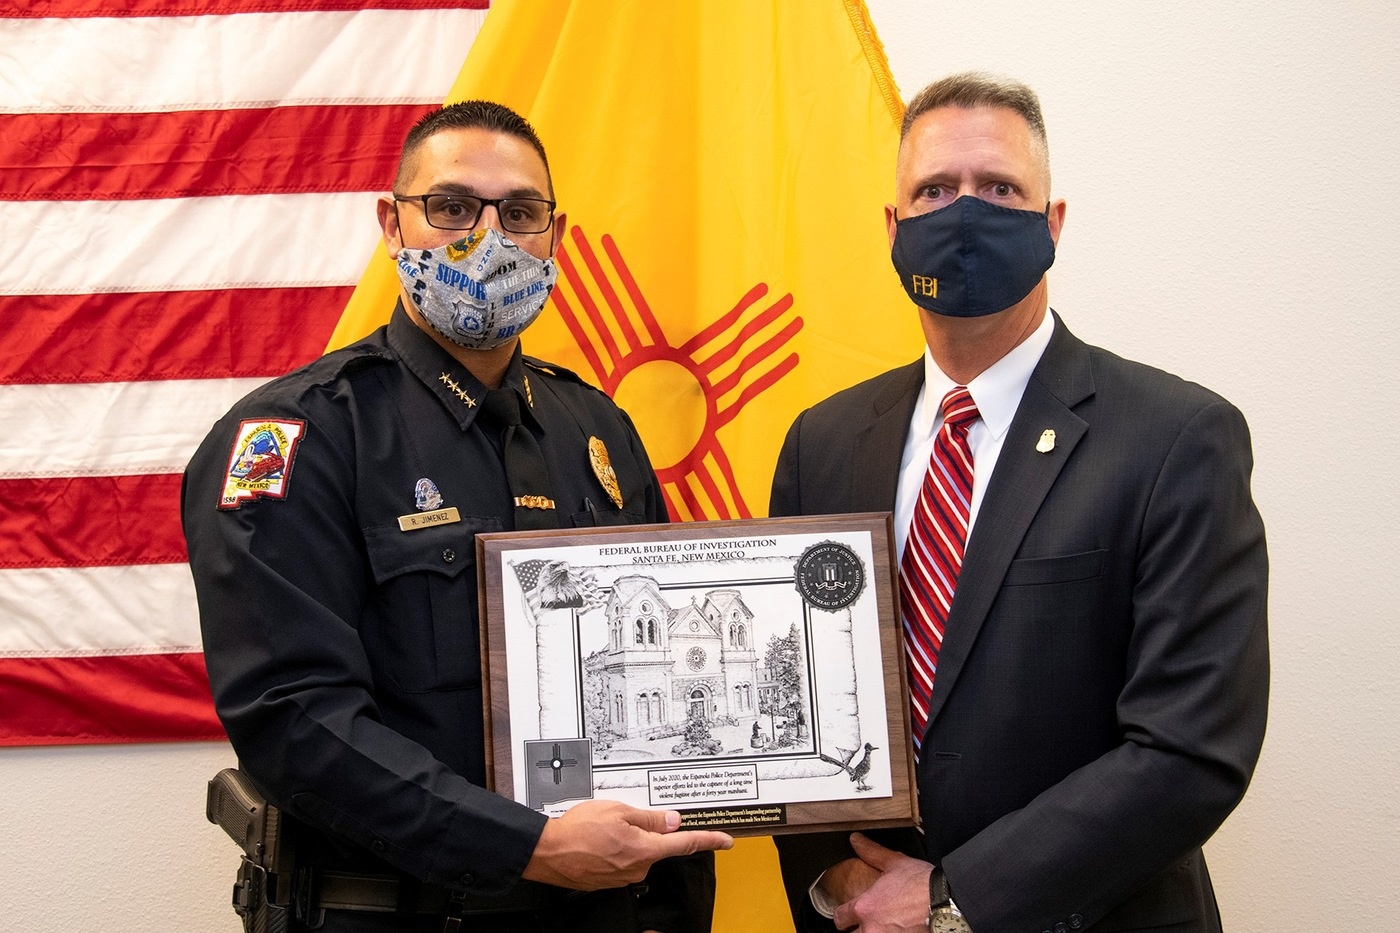 James Langenberg, Special Agent in Charge of the Albuquerque FBI Division, presented a plaque to Española Police Chief Roger Jimenez.